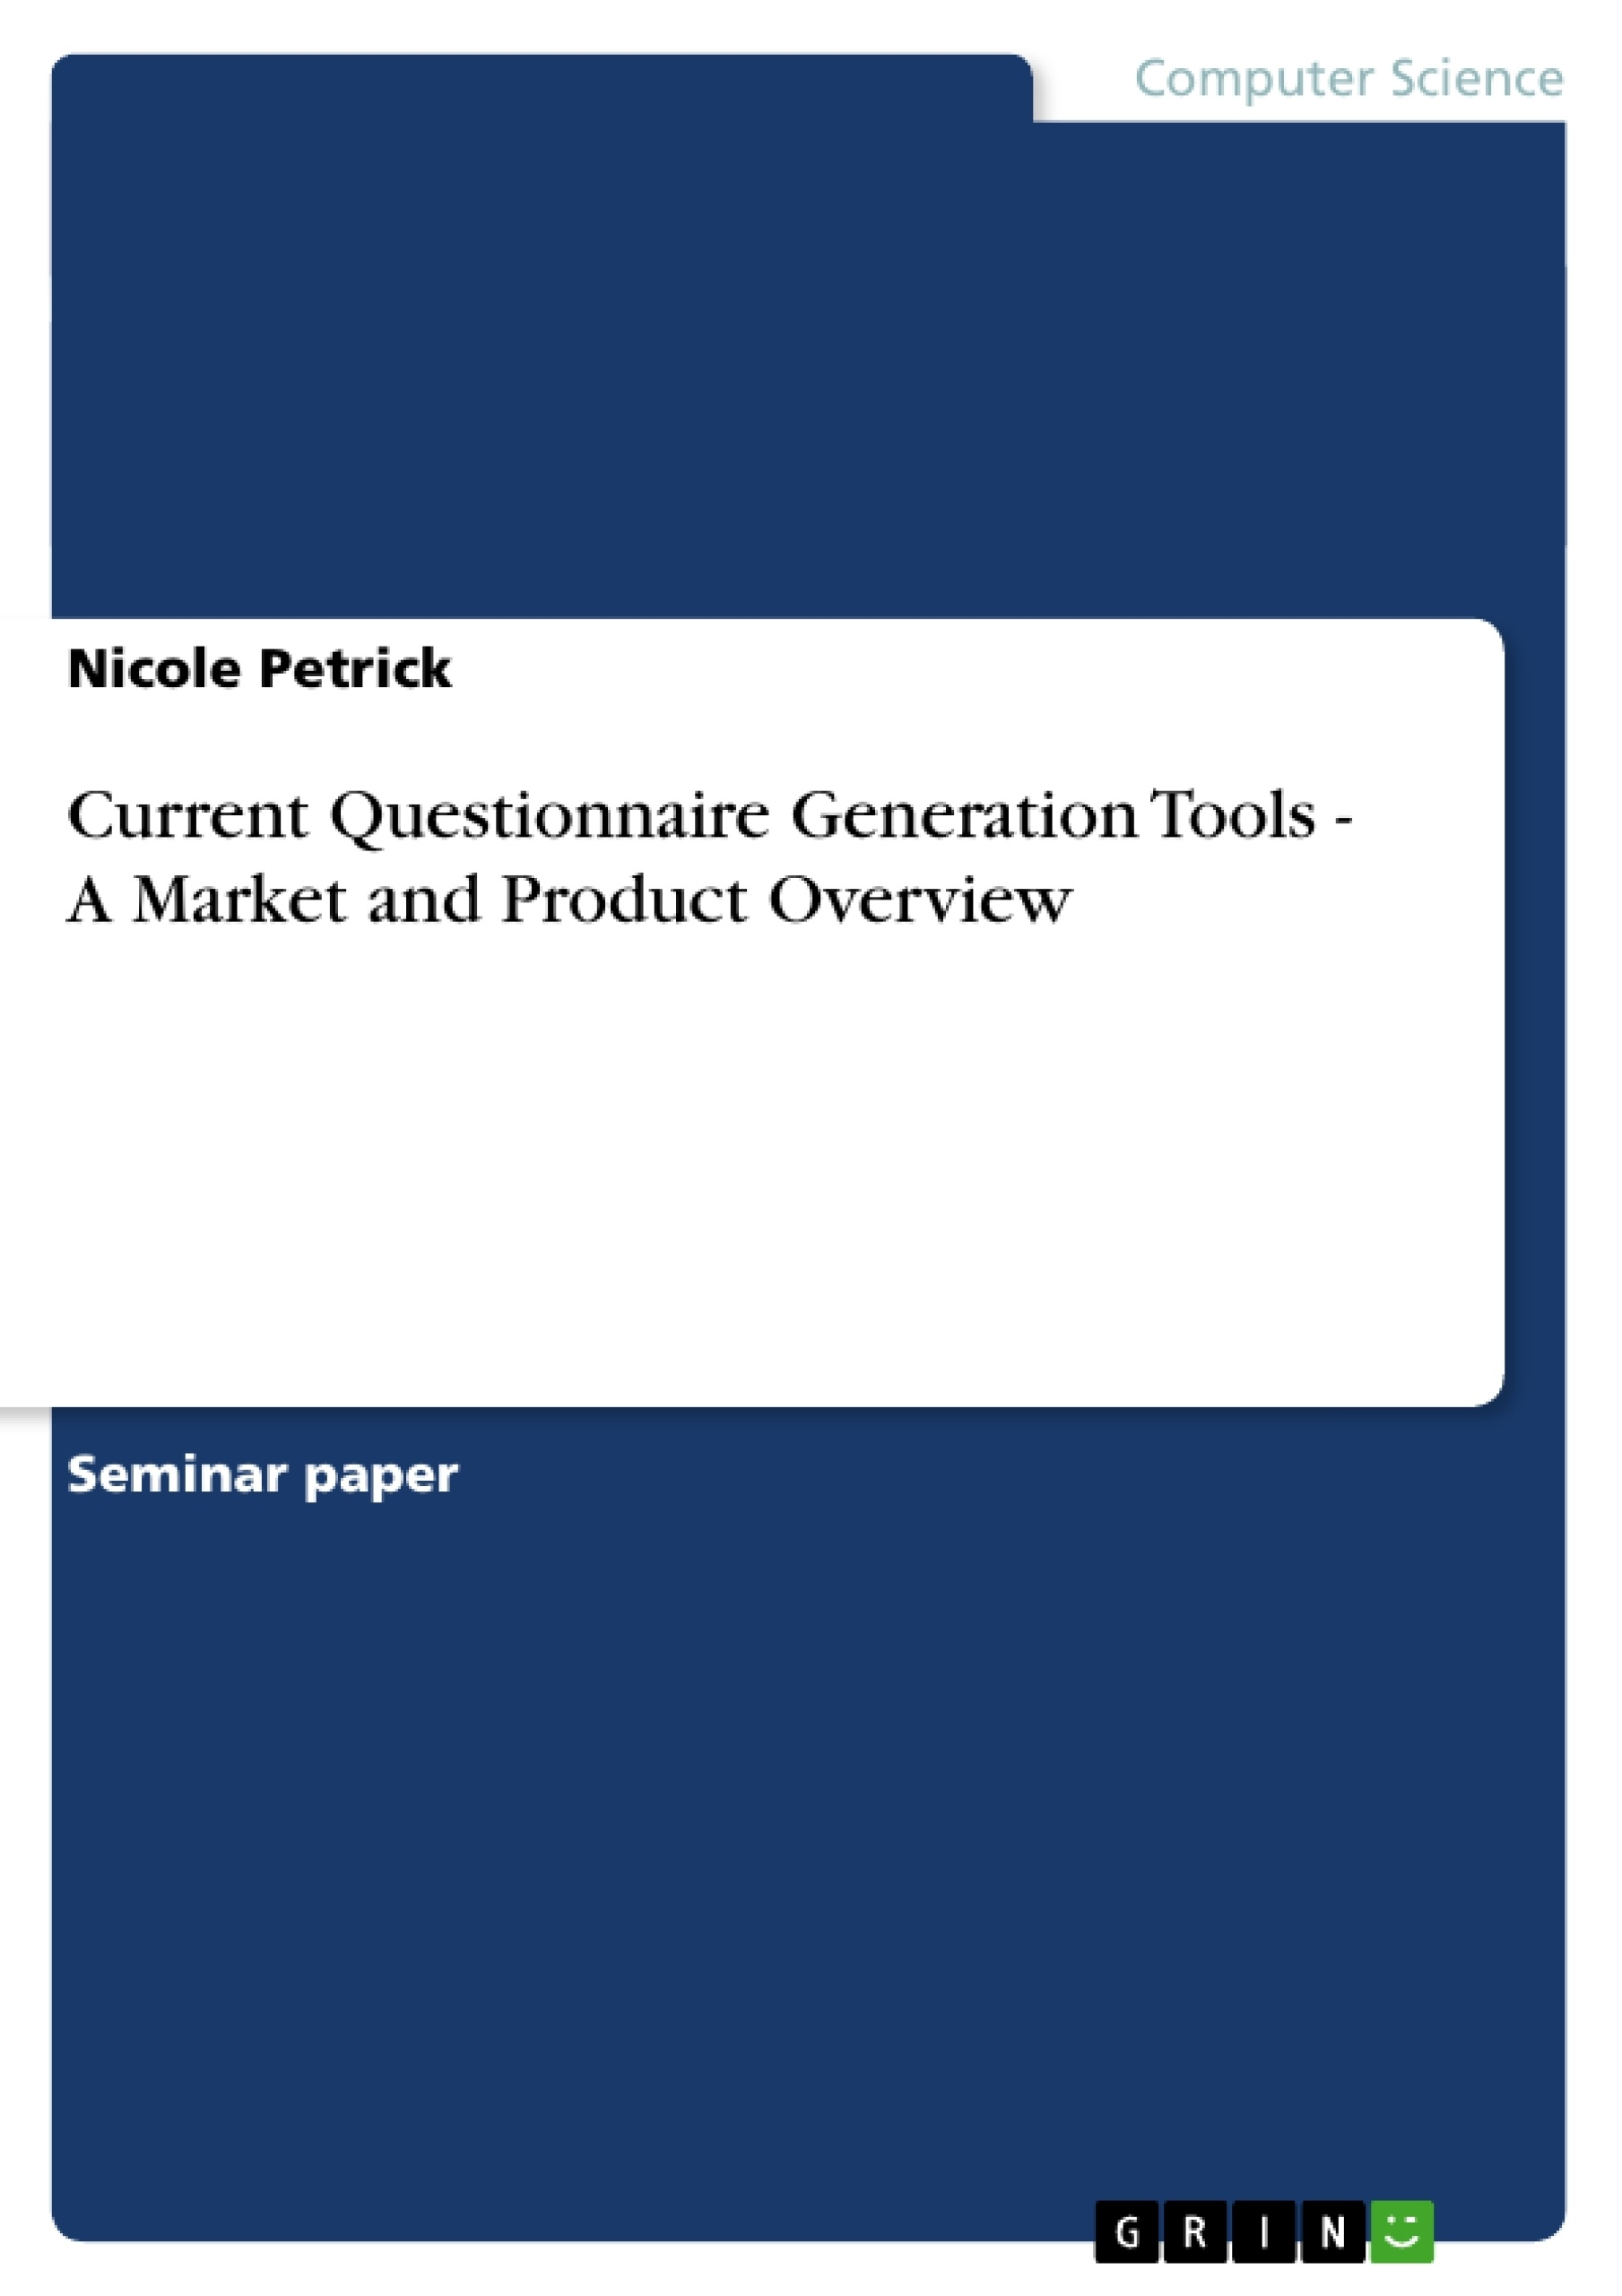 Title: Current Questionnaire Generation Tools - A Market and Product Overview